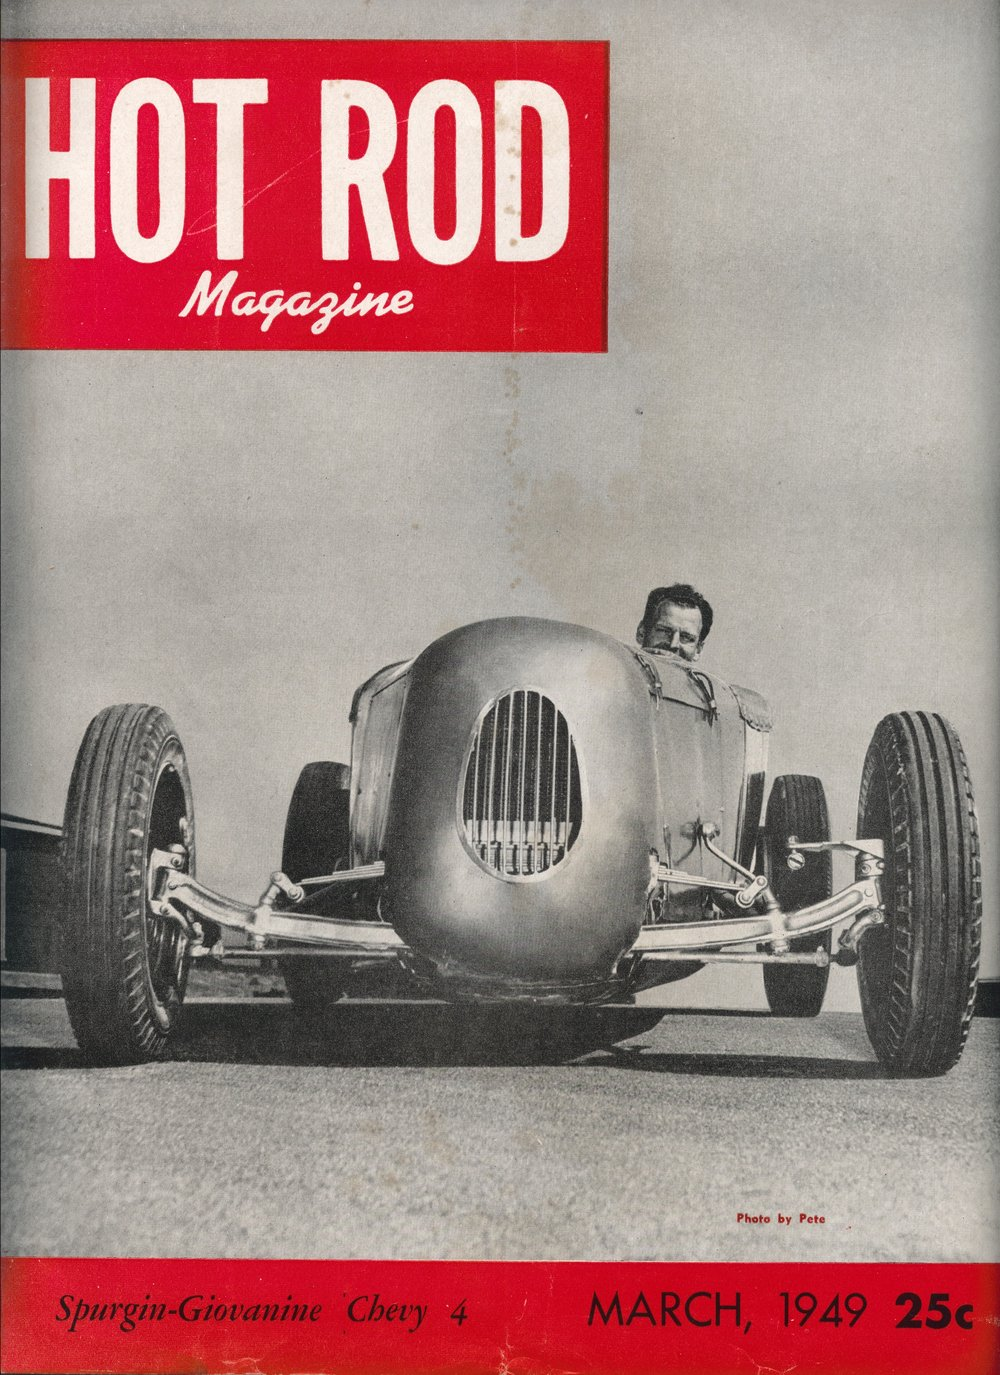 1949 Hot Rod Magazine Cover.jpg